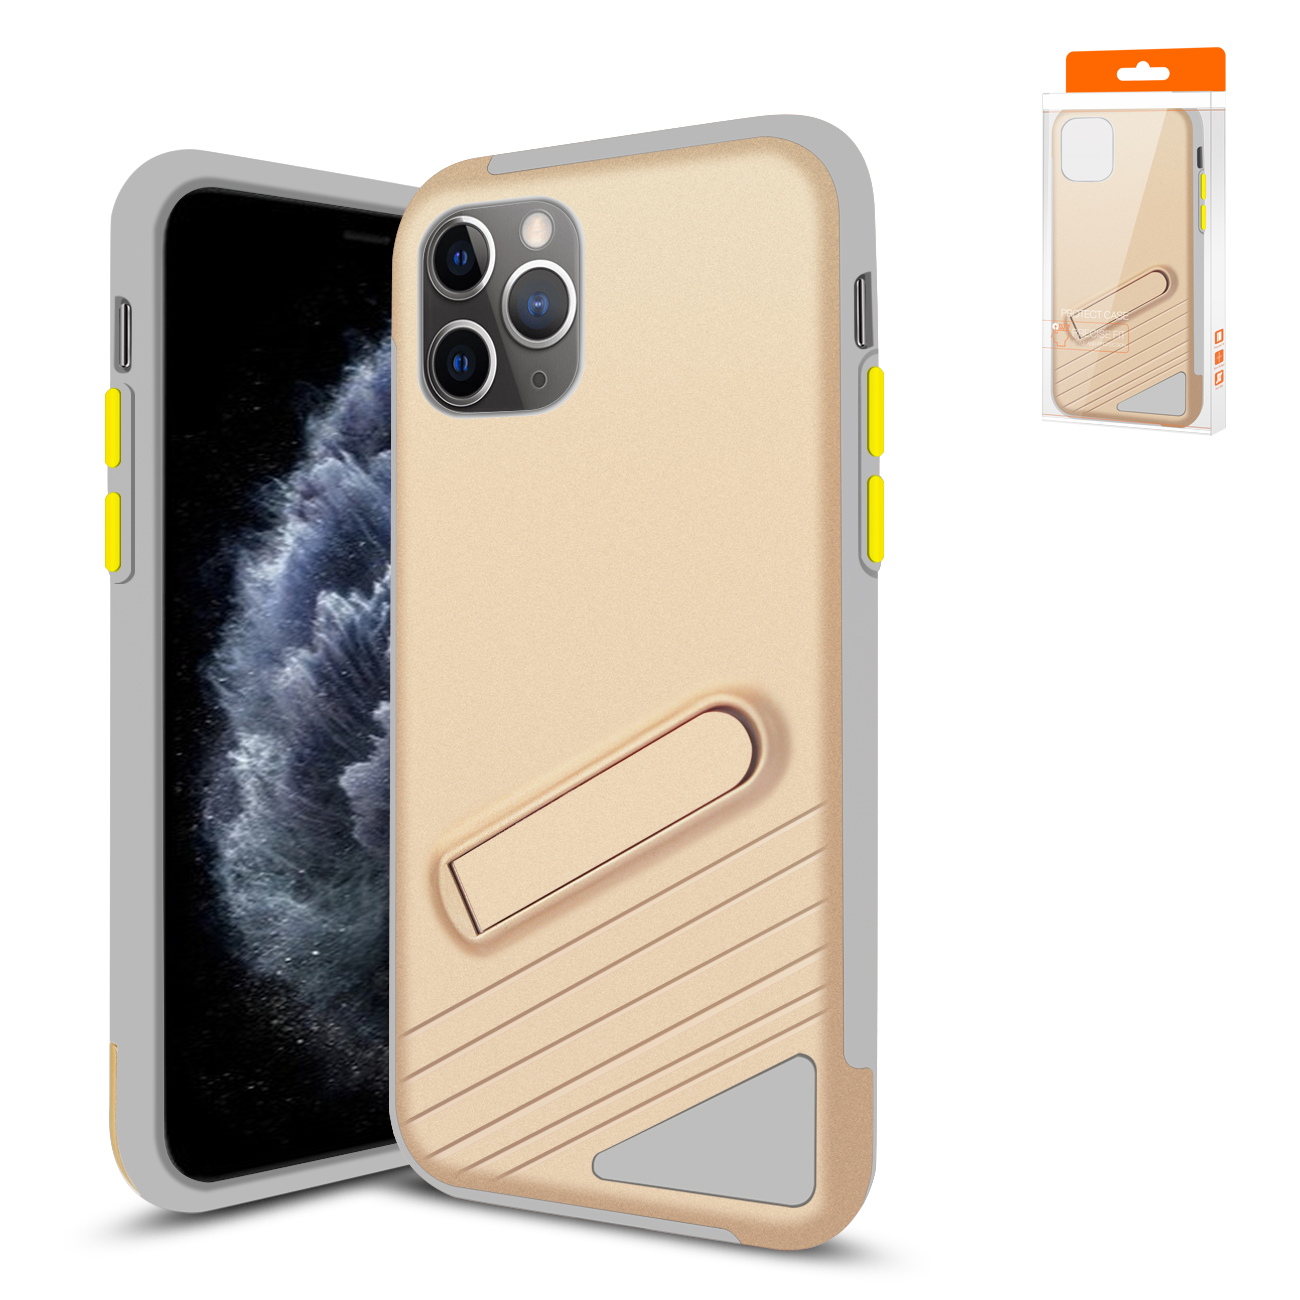 Apple iPhone 11 Pro Max Armor Cases In Gold